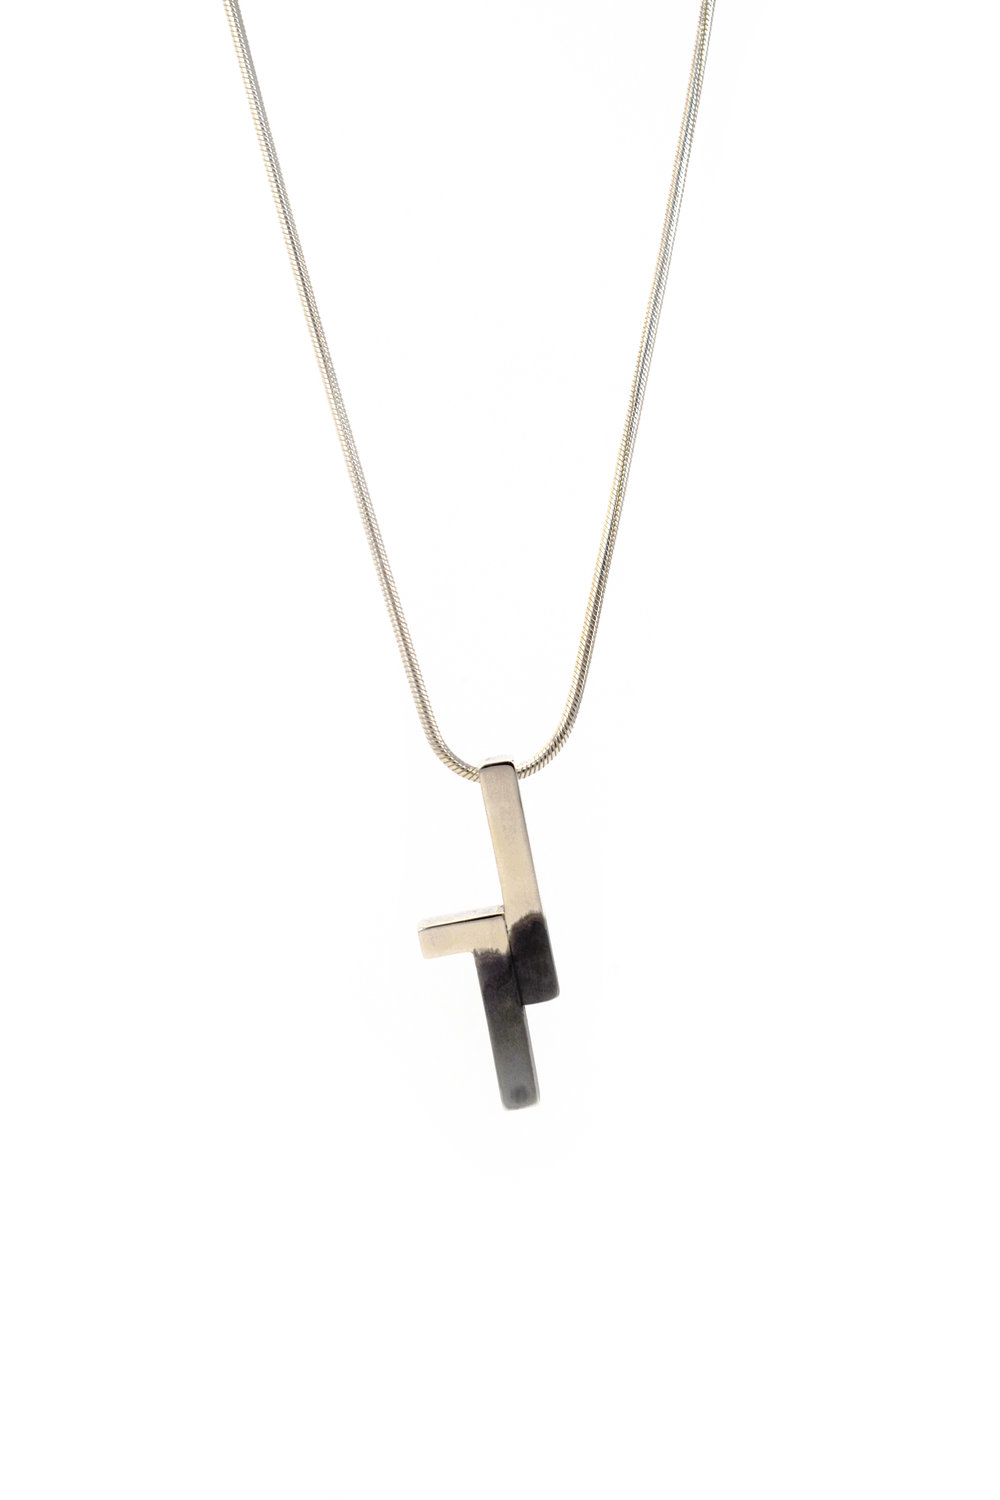 ONE Silver Necklace - 135€